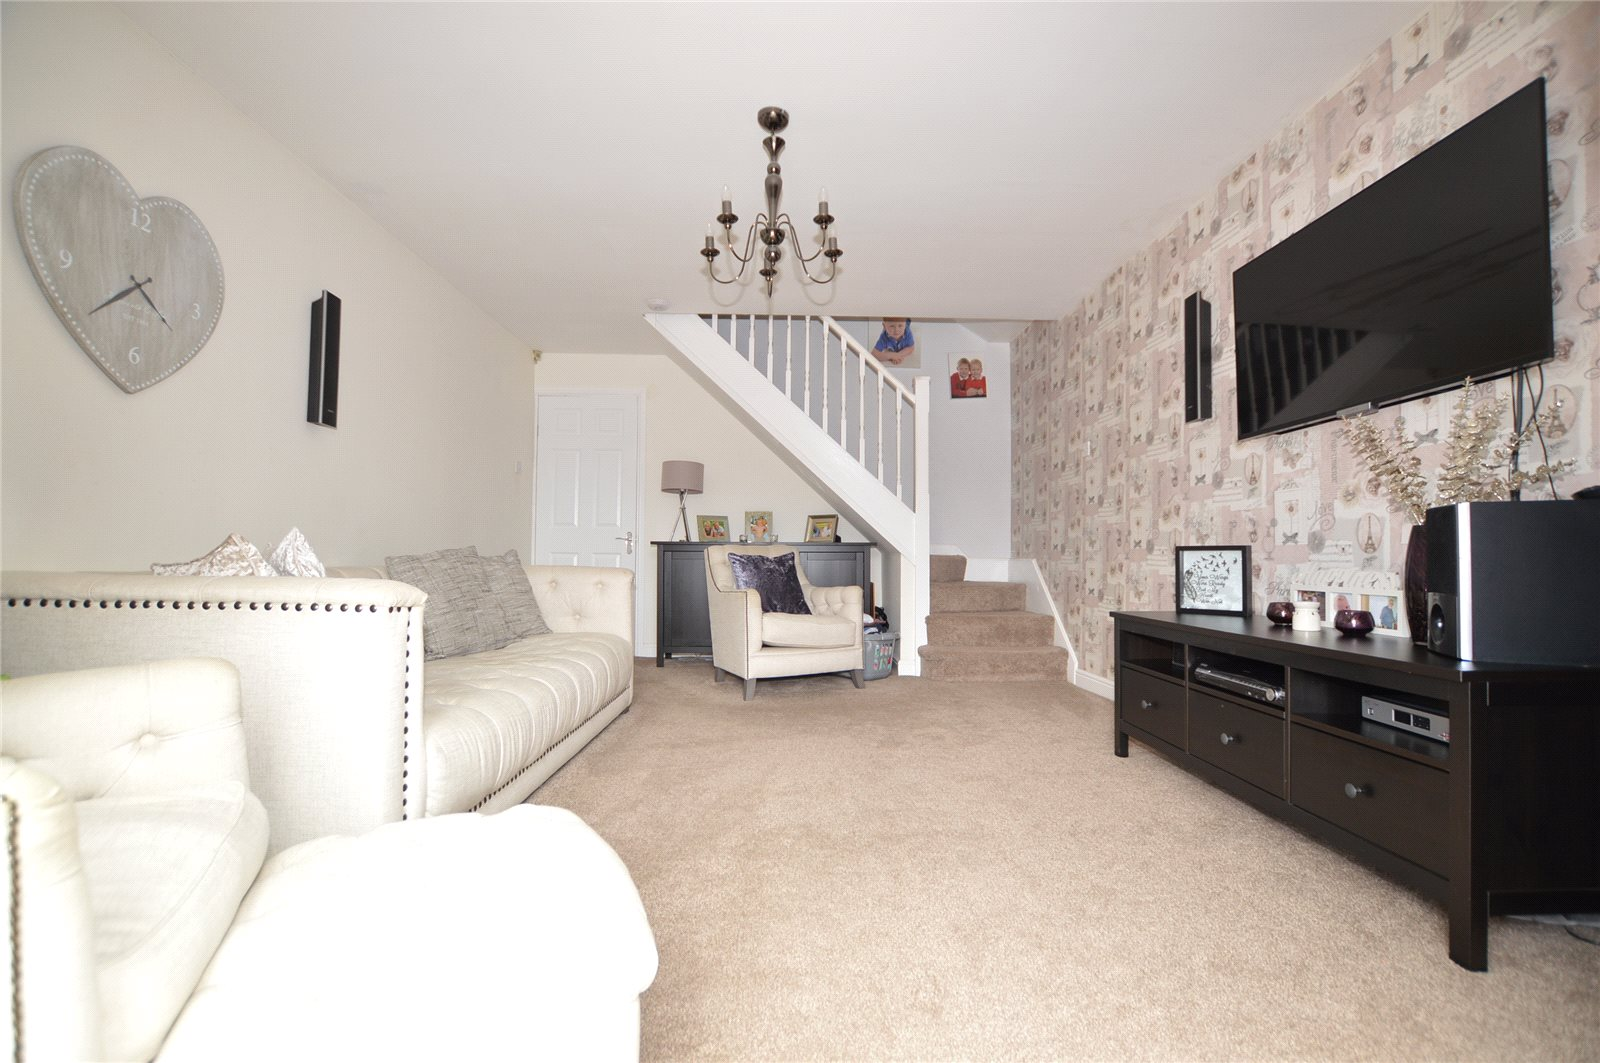 living room property for sale in morley, white decor, spacious room